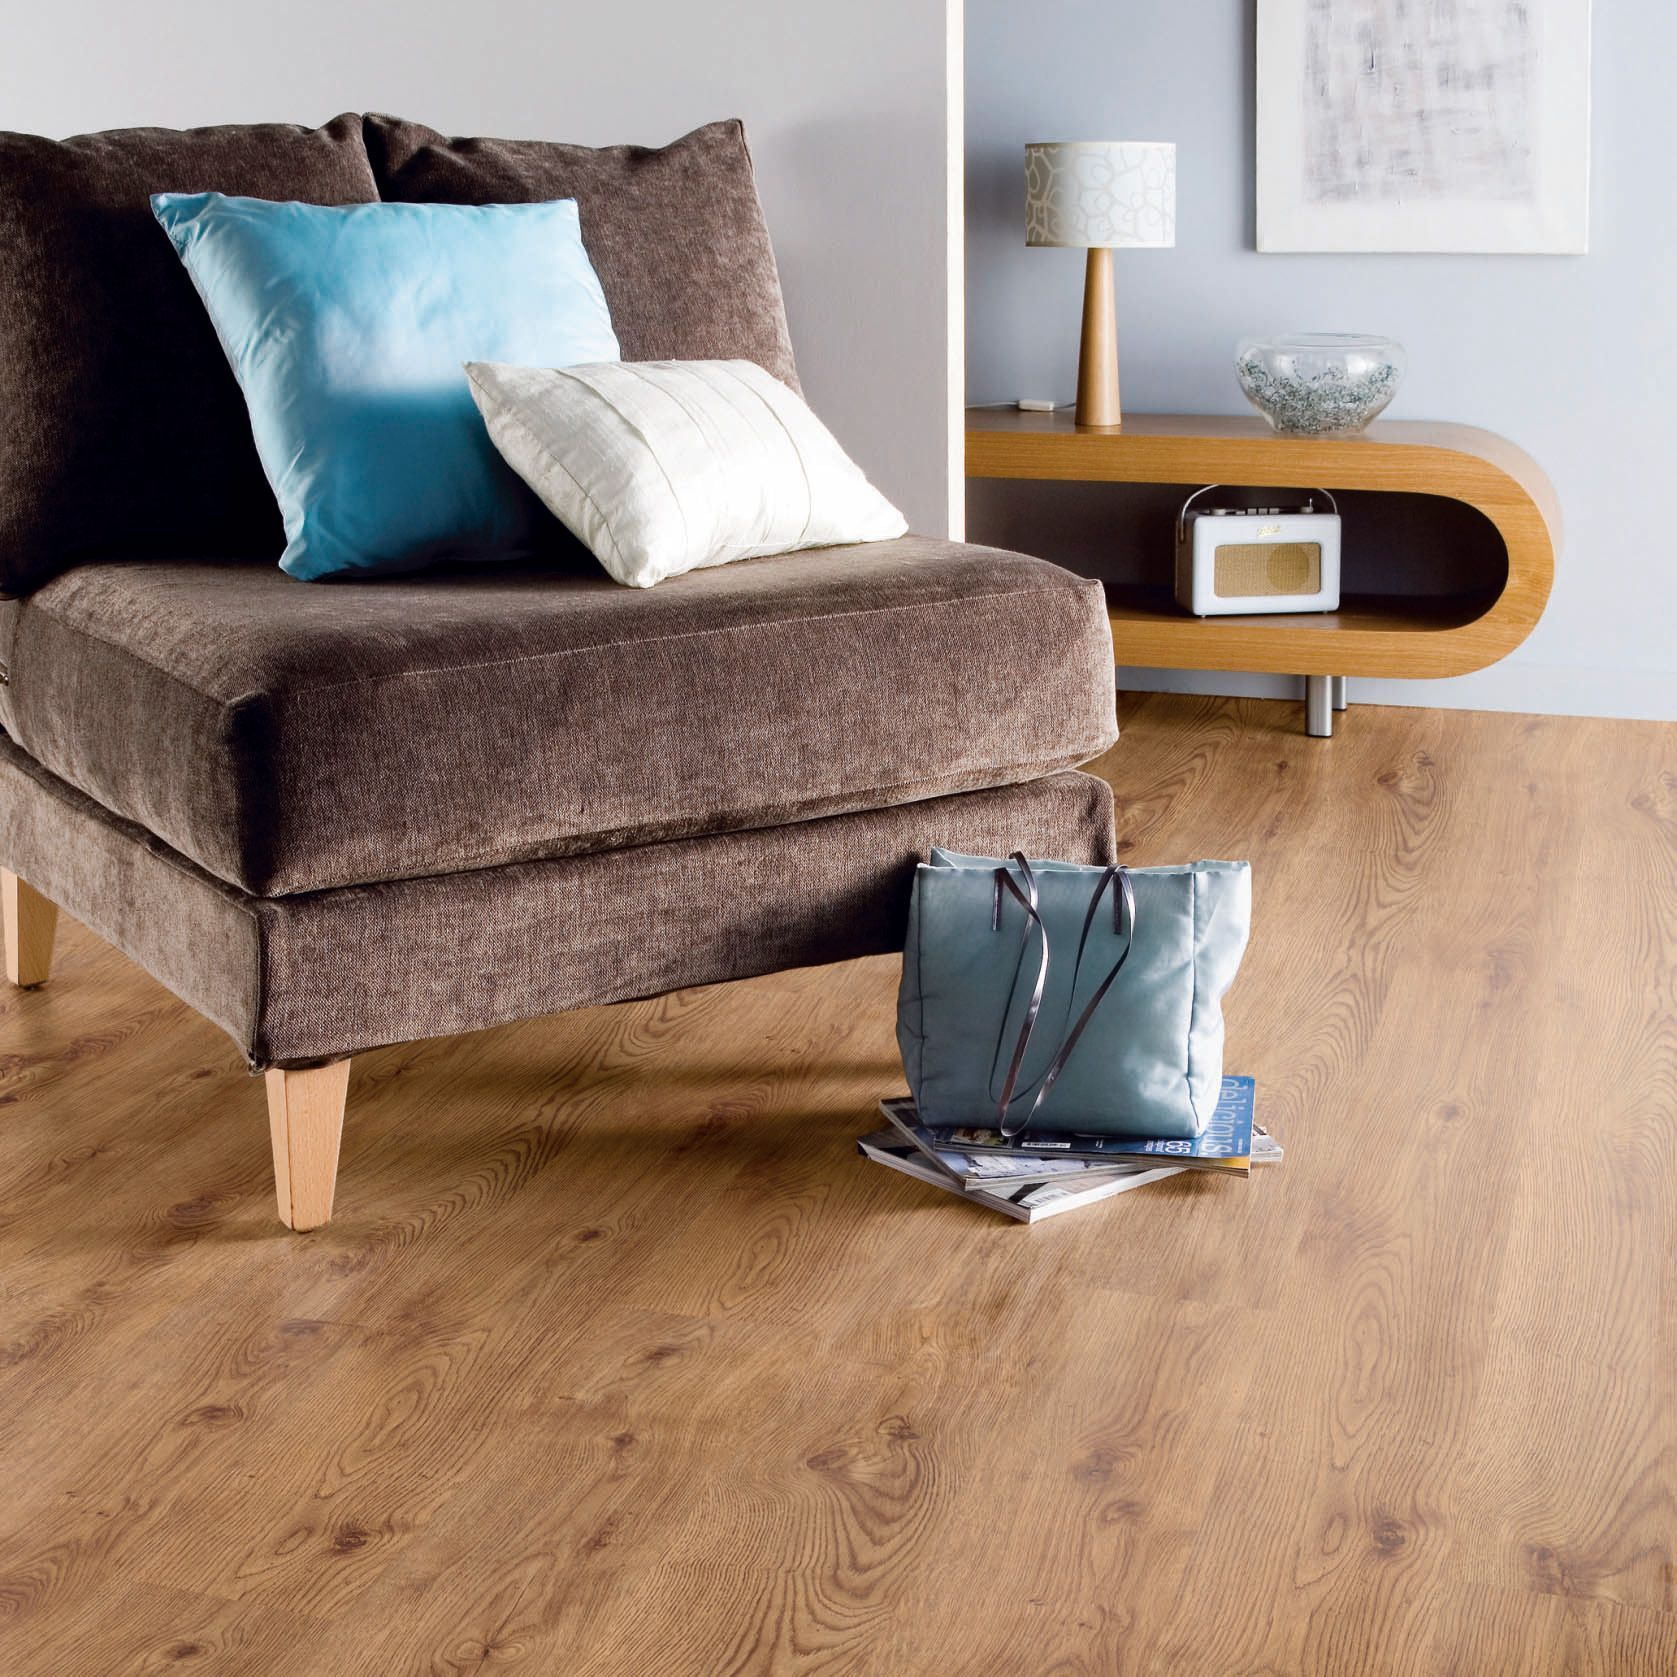 B&q Country Oak Effect Glueless Laminate Flooring 25M² Pack Gorgeous B & Q Kitchen Design Inspiration Design